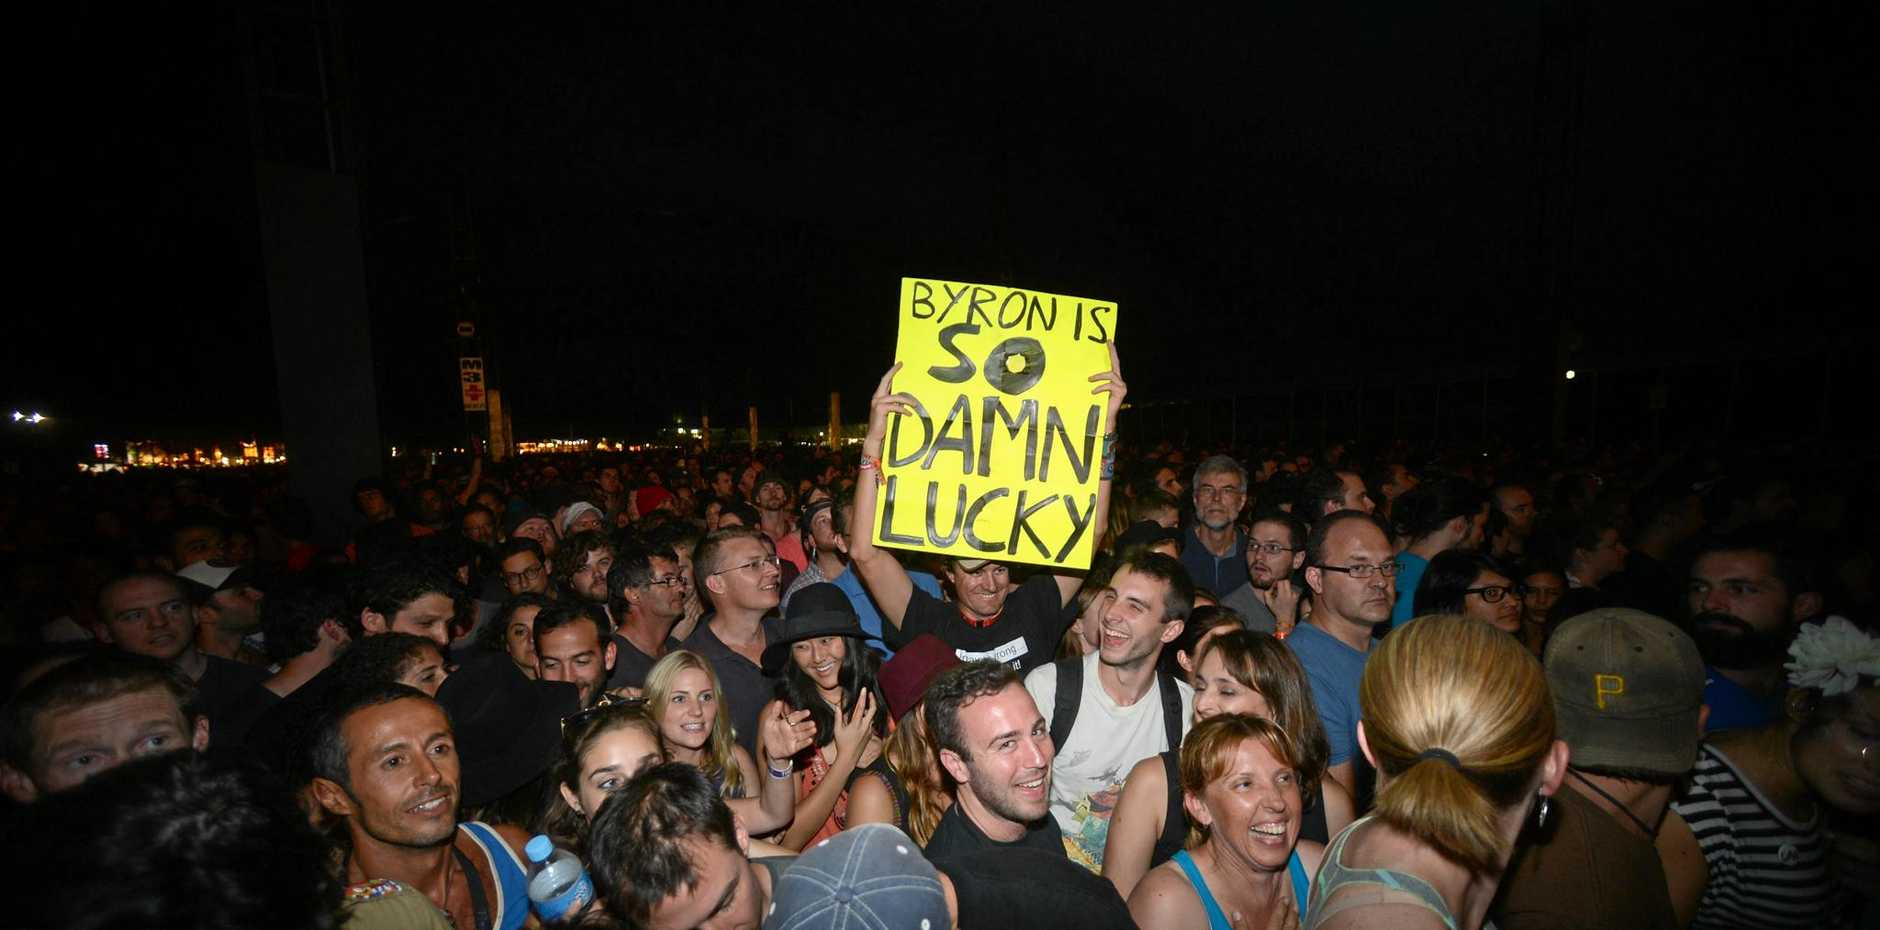 YES WE ARE: An enthusiastic crowd at the 25th Annual Byron Bay Bluesfest 2014.